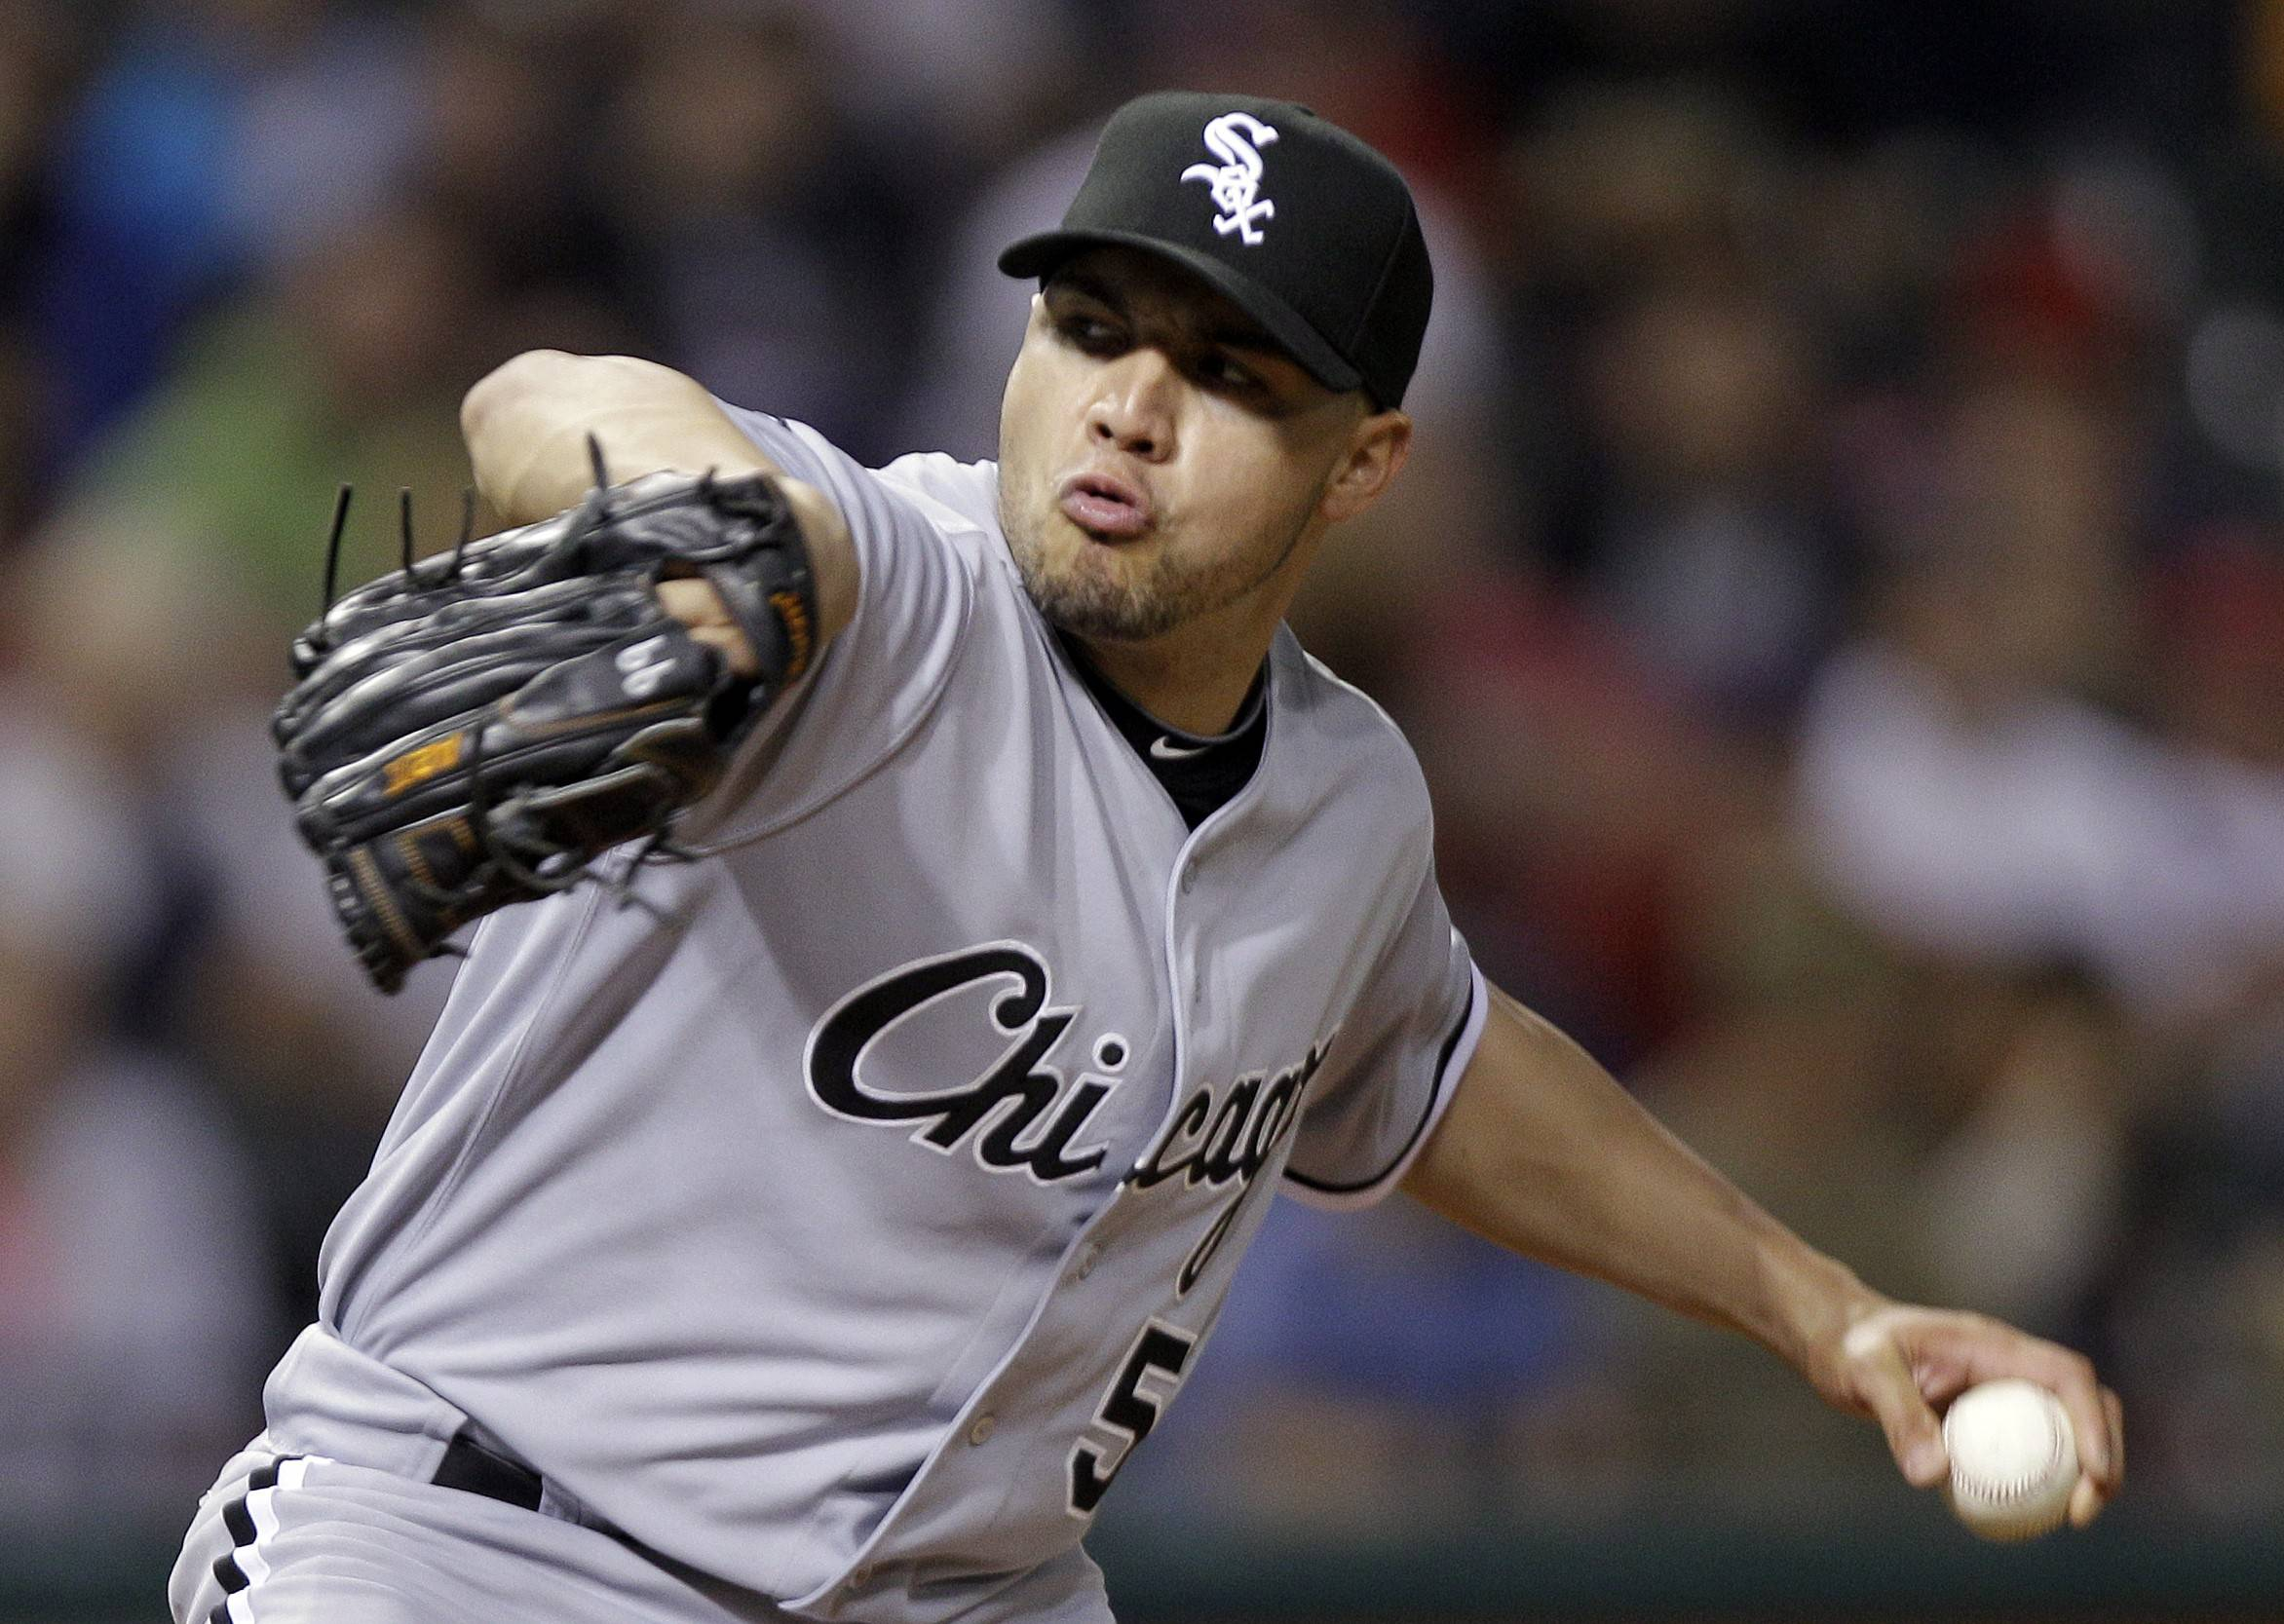 Chicago White Sox's Hector Santiago pitches against the Cleveland Indians in the ninth inning of a baseball game Tuesday, May 8, 2012, in Cleveland. The White Sox scored two runs in the 10th off Cleveland Indians relief pitcher Chris Perez to make Santiago the winner, 5-3.